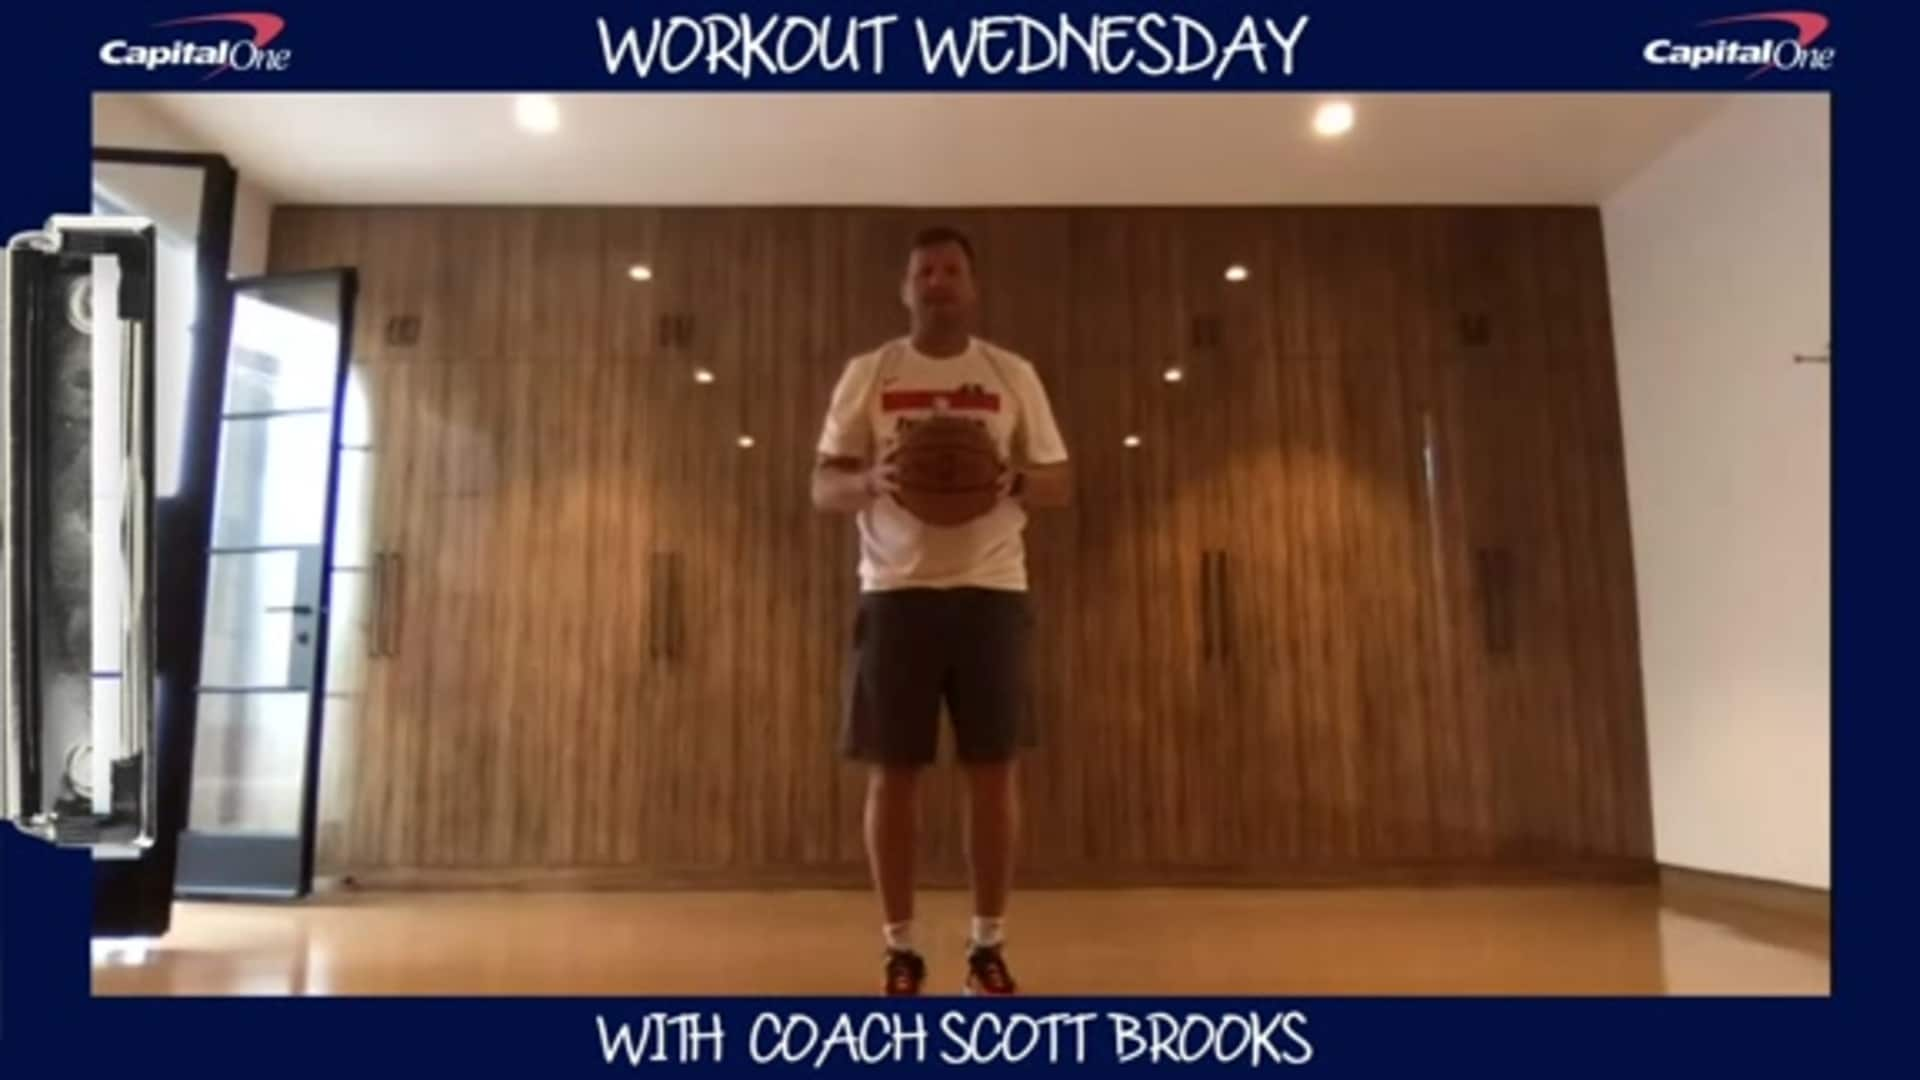 Coach Scott Brooks' Workout Wednesdays presented by Capital One - 5/13/20